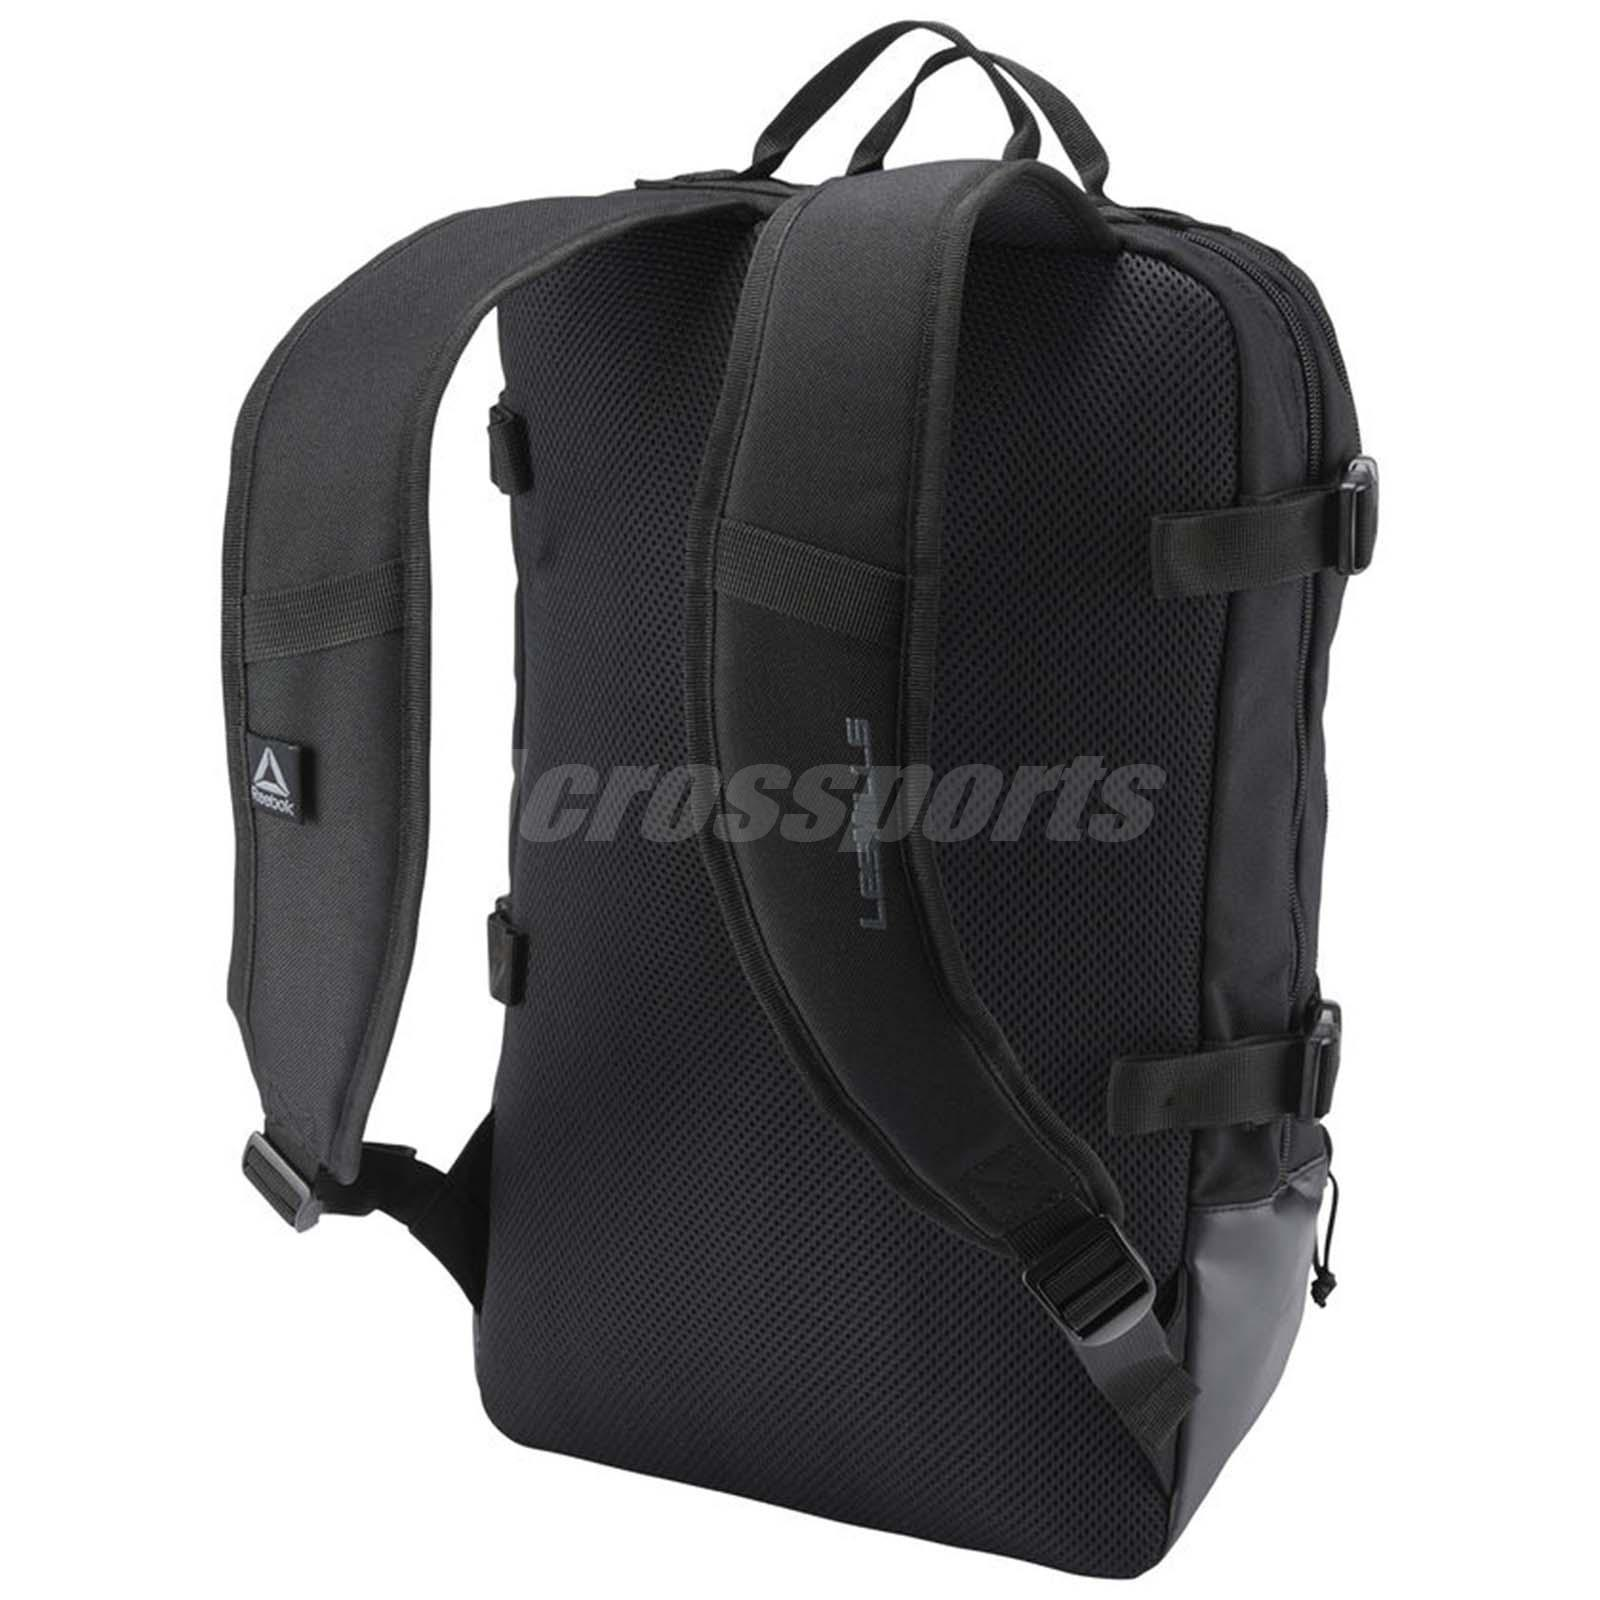 Reebok Les Mills Backpack Training Workout Fitness Gym Bag Sports ... f94d9a05ba7cb